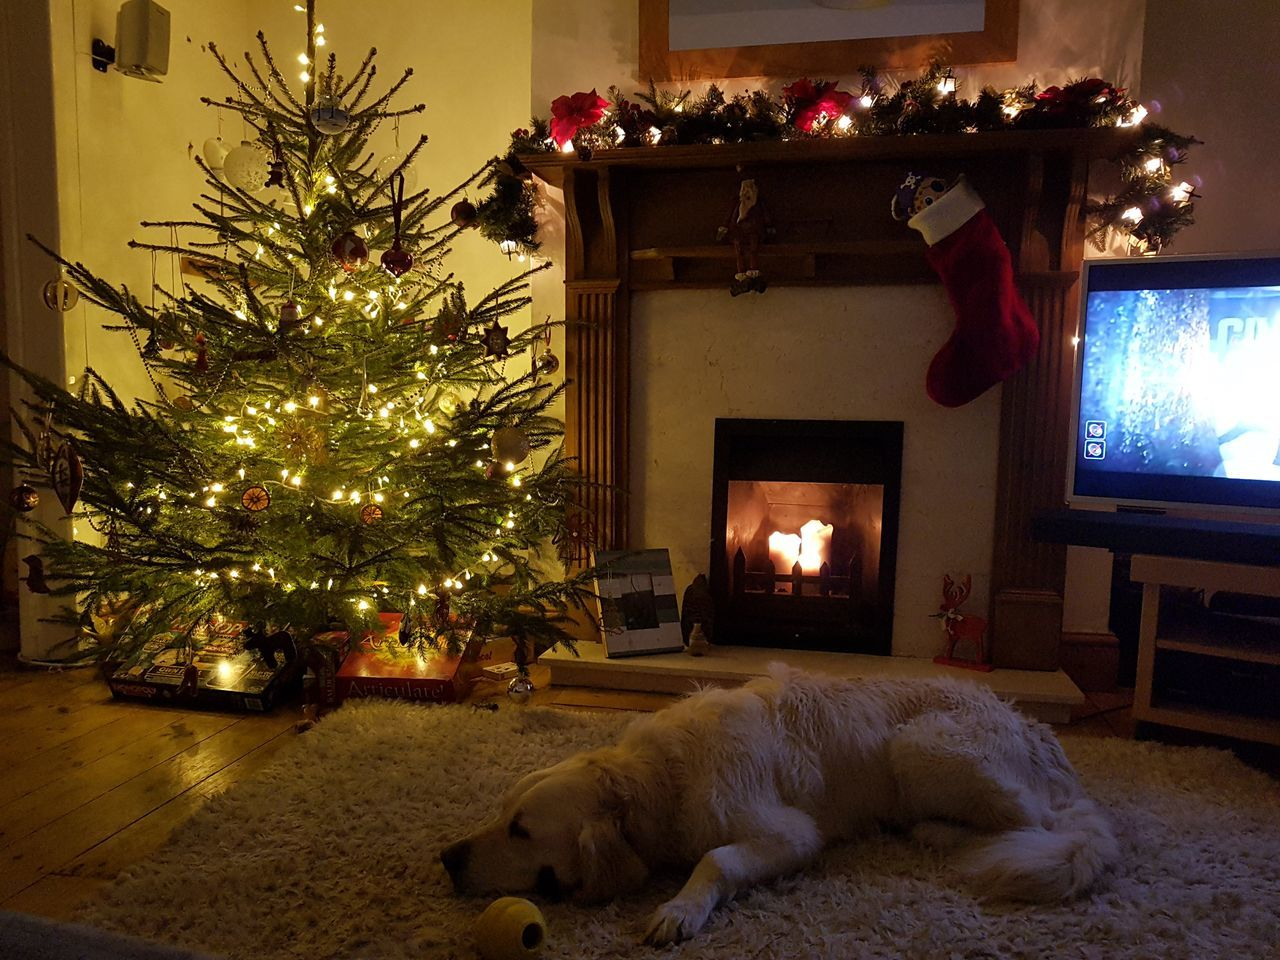 Golden Retriever dog lies on a white rug in front of a burning fire and a lit and decorated Christmas tree. A traditional Christmas scene indoors from Christmas 2016. Christmas Tree First Eyeem Photo Christmas Time Dog Golden Retriever Indoors  Traditional Fire Candle Light Christmas Tree Lights Scene Decoration Rug